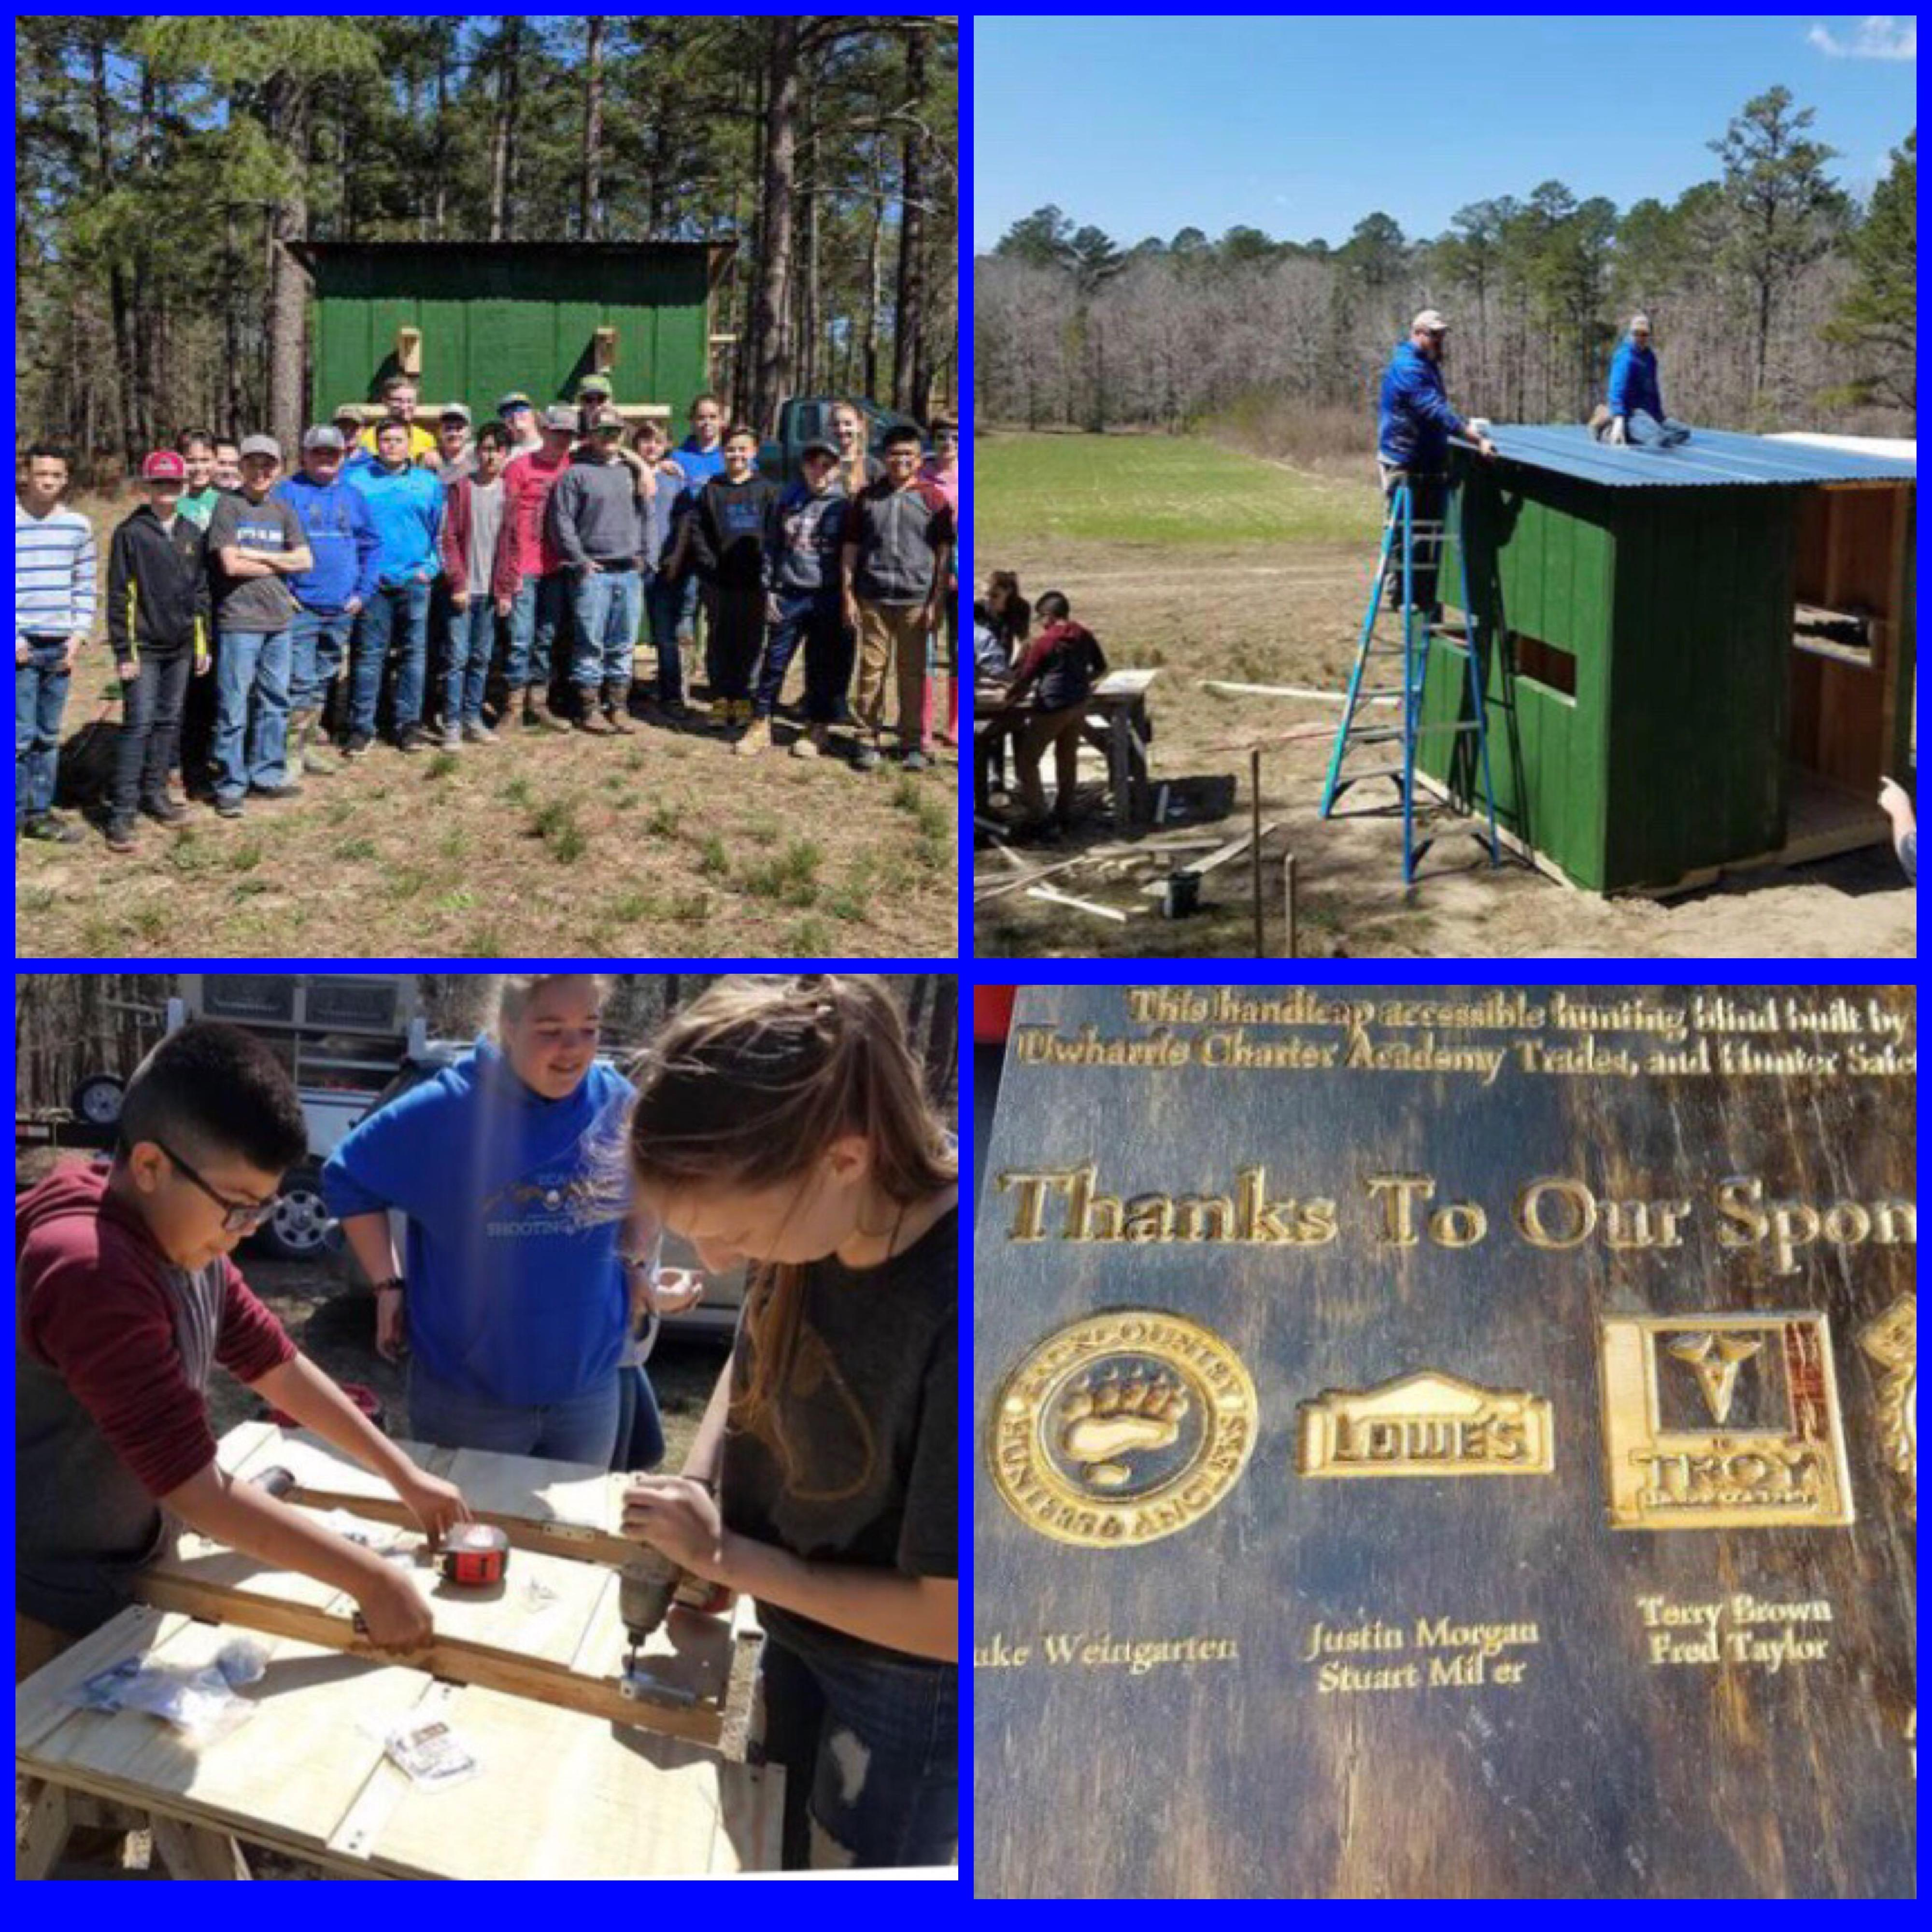 UCA Students Help Build Handicap Accessible Hunting Blind Image